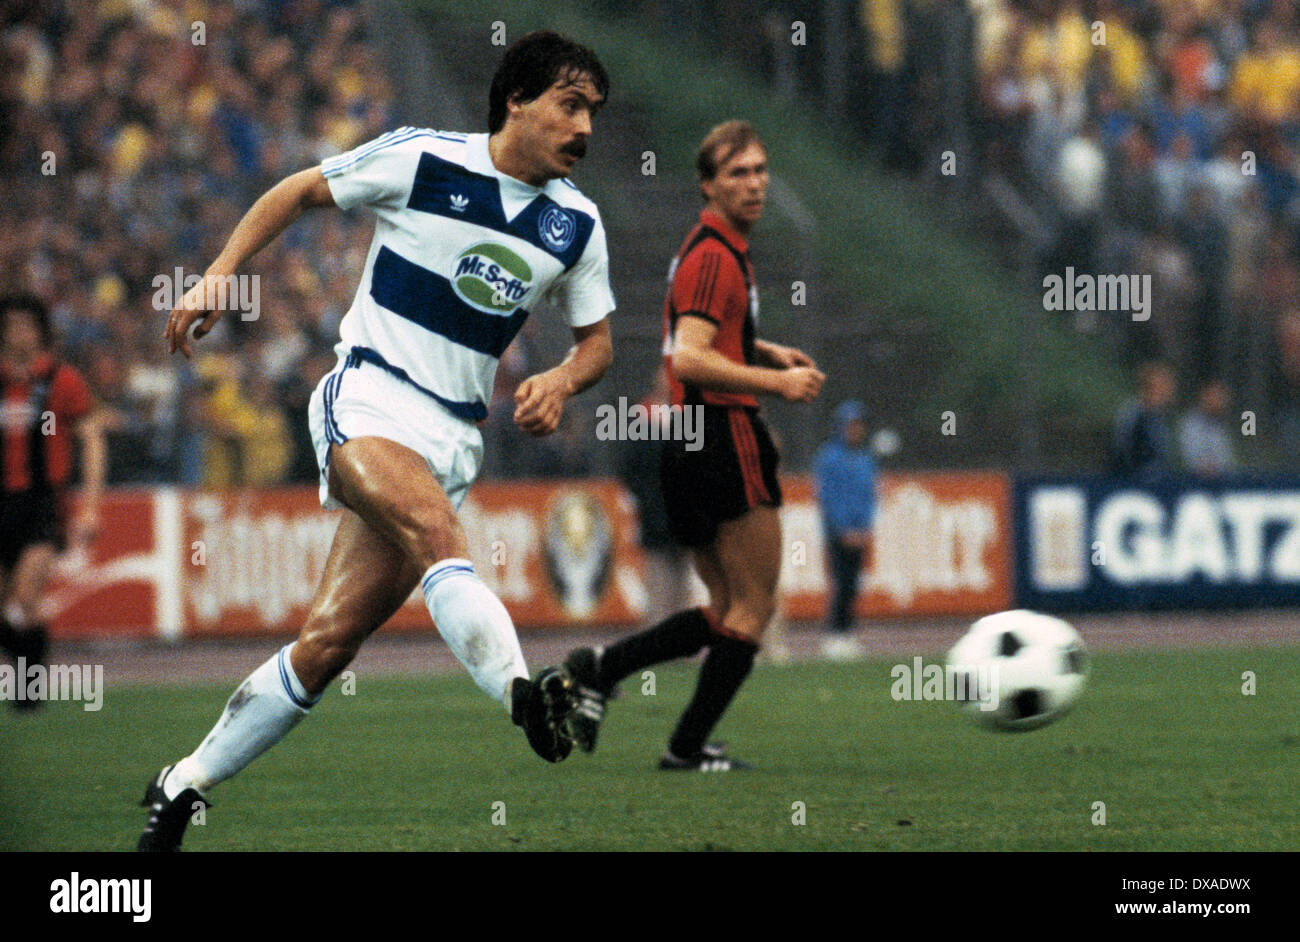 football, 1. Bundesliga, 2. Bundesliga, 1983/1984, relegation match to Bundesliga 1984/1985, first leg, Wedau Stadium, MSV Duisburg versus Eintracht Frankfurt 0:5, scene of the match, Manfred Dubski (MSV) passing - Stock Image